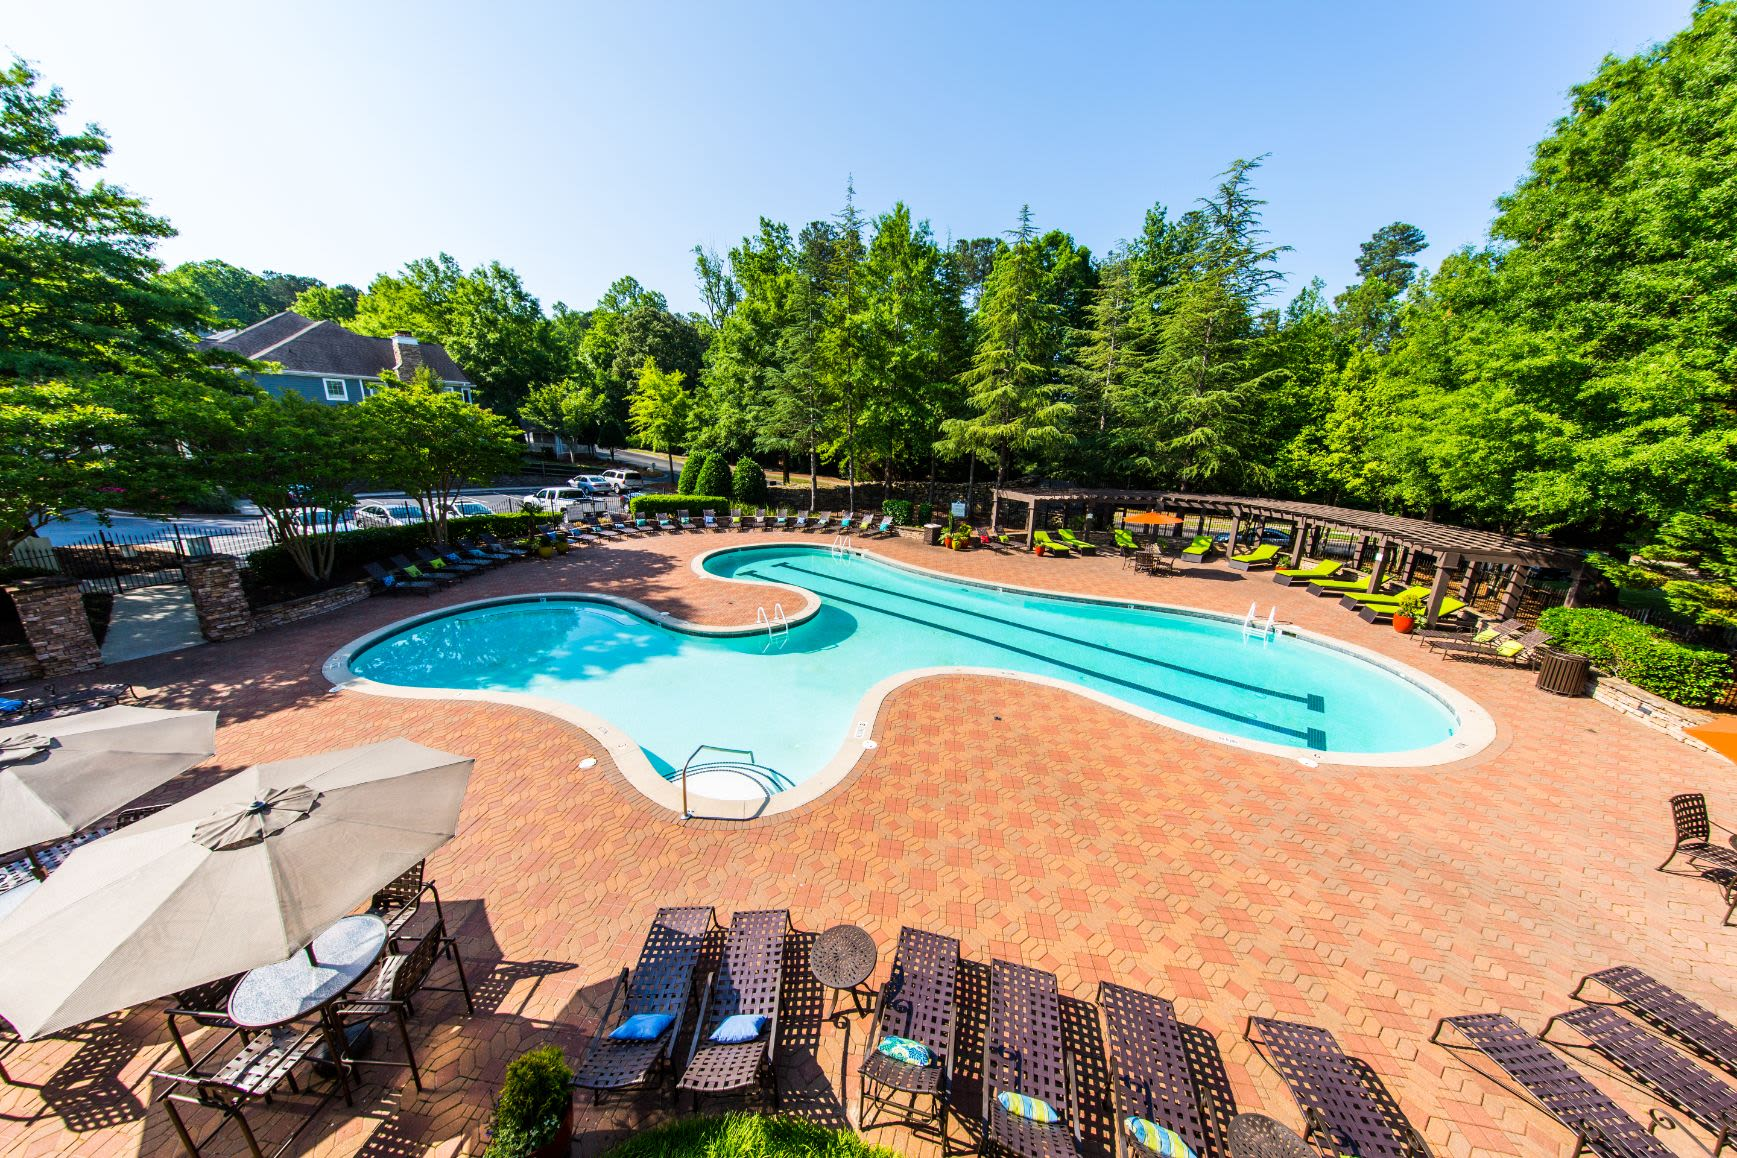 Swimming pool with sun chairs at Marquis on Edwards Mill in Raleigh, North Carolina